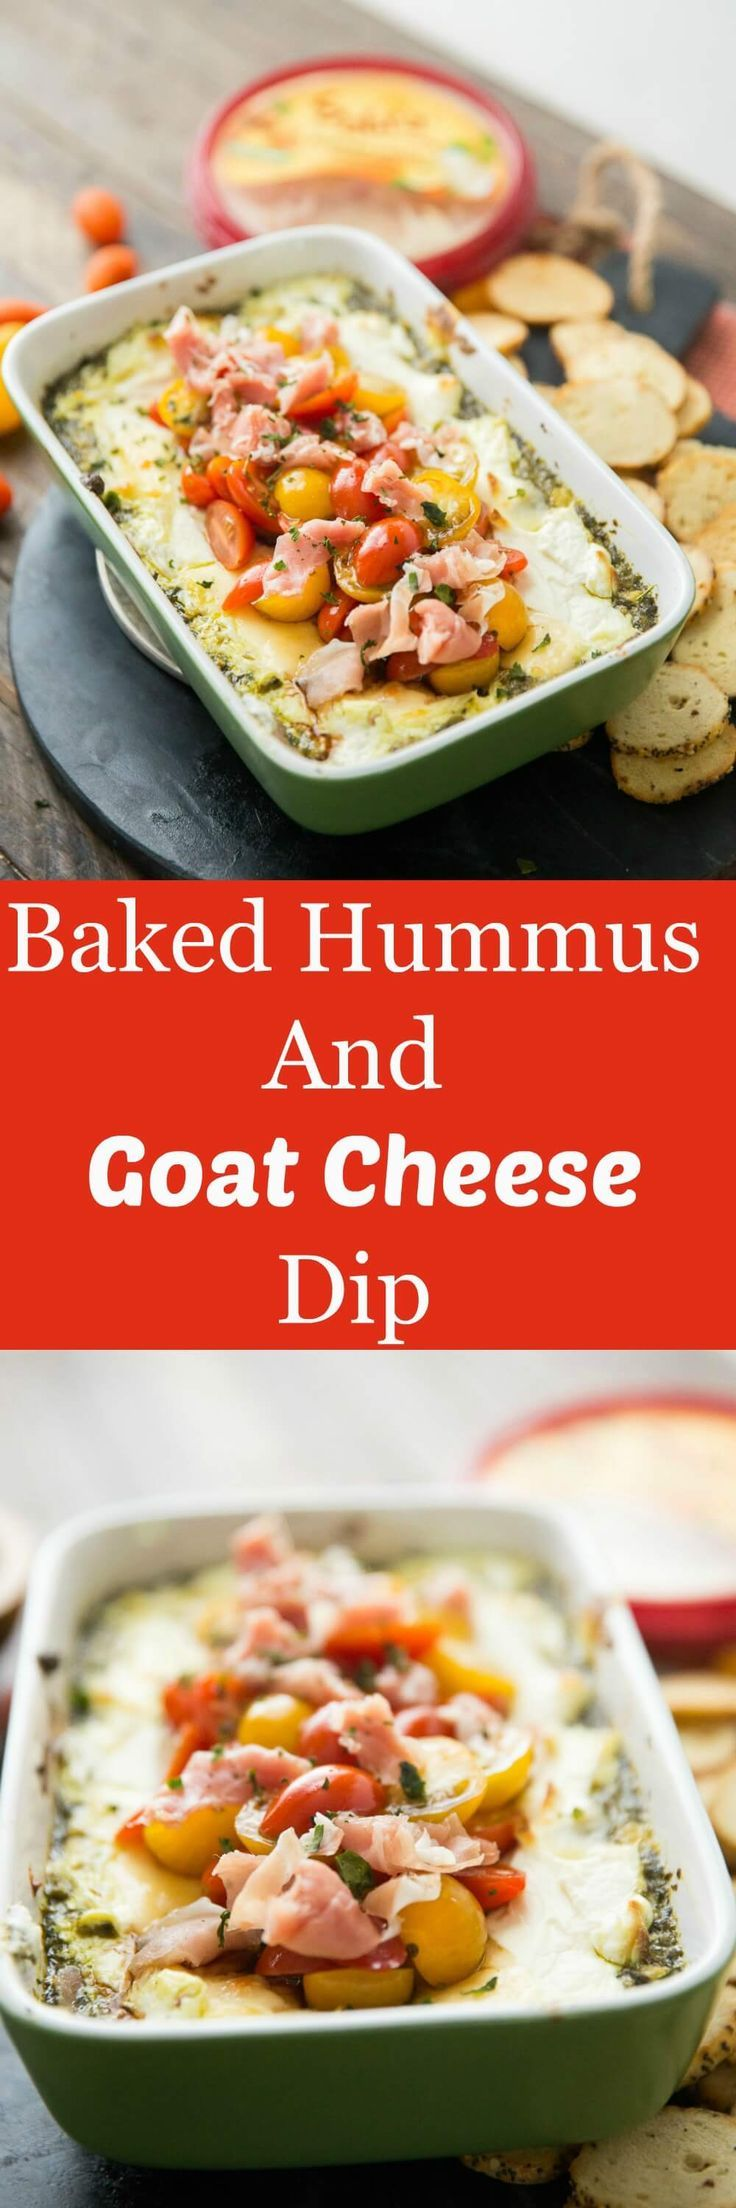 This baked goat cheese dip is so good you could eat it as a meal!  The cheese is hot and bubbly and the layers o flavor are amazing!